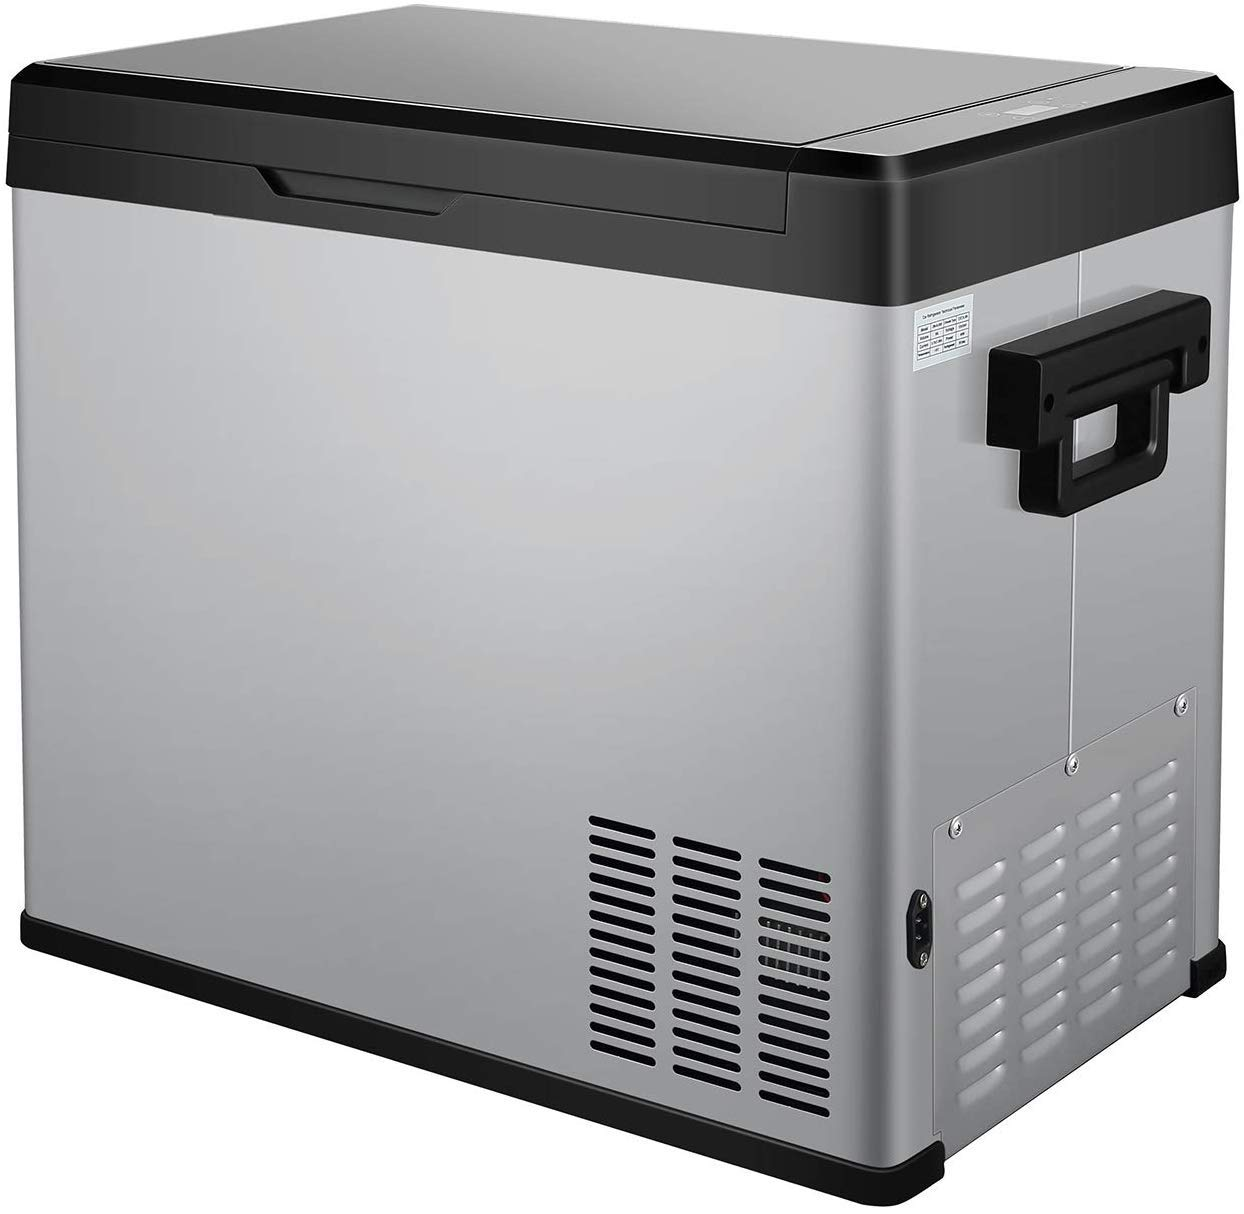 54 Quart RV Refrigerator/Freezer Compact Vehicle Car Fridge Compressor Electric Cooler for Car,Truck,RV,Boat,Outdoor and Home use 12/24V DC and 90-250 AC,Cooling from 68°F to -13°F